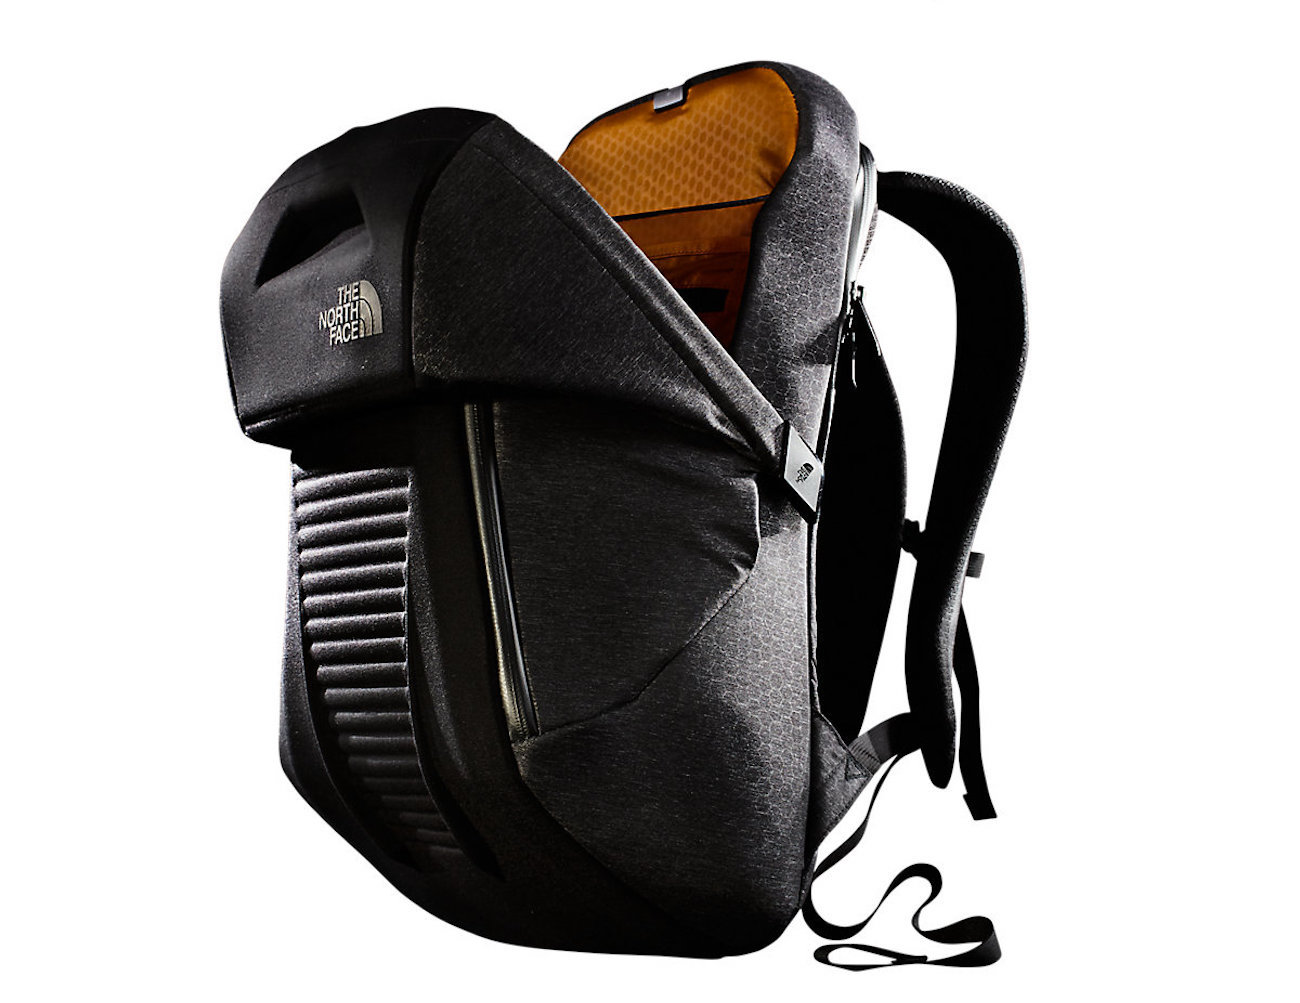 Access Pack by The North Face